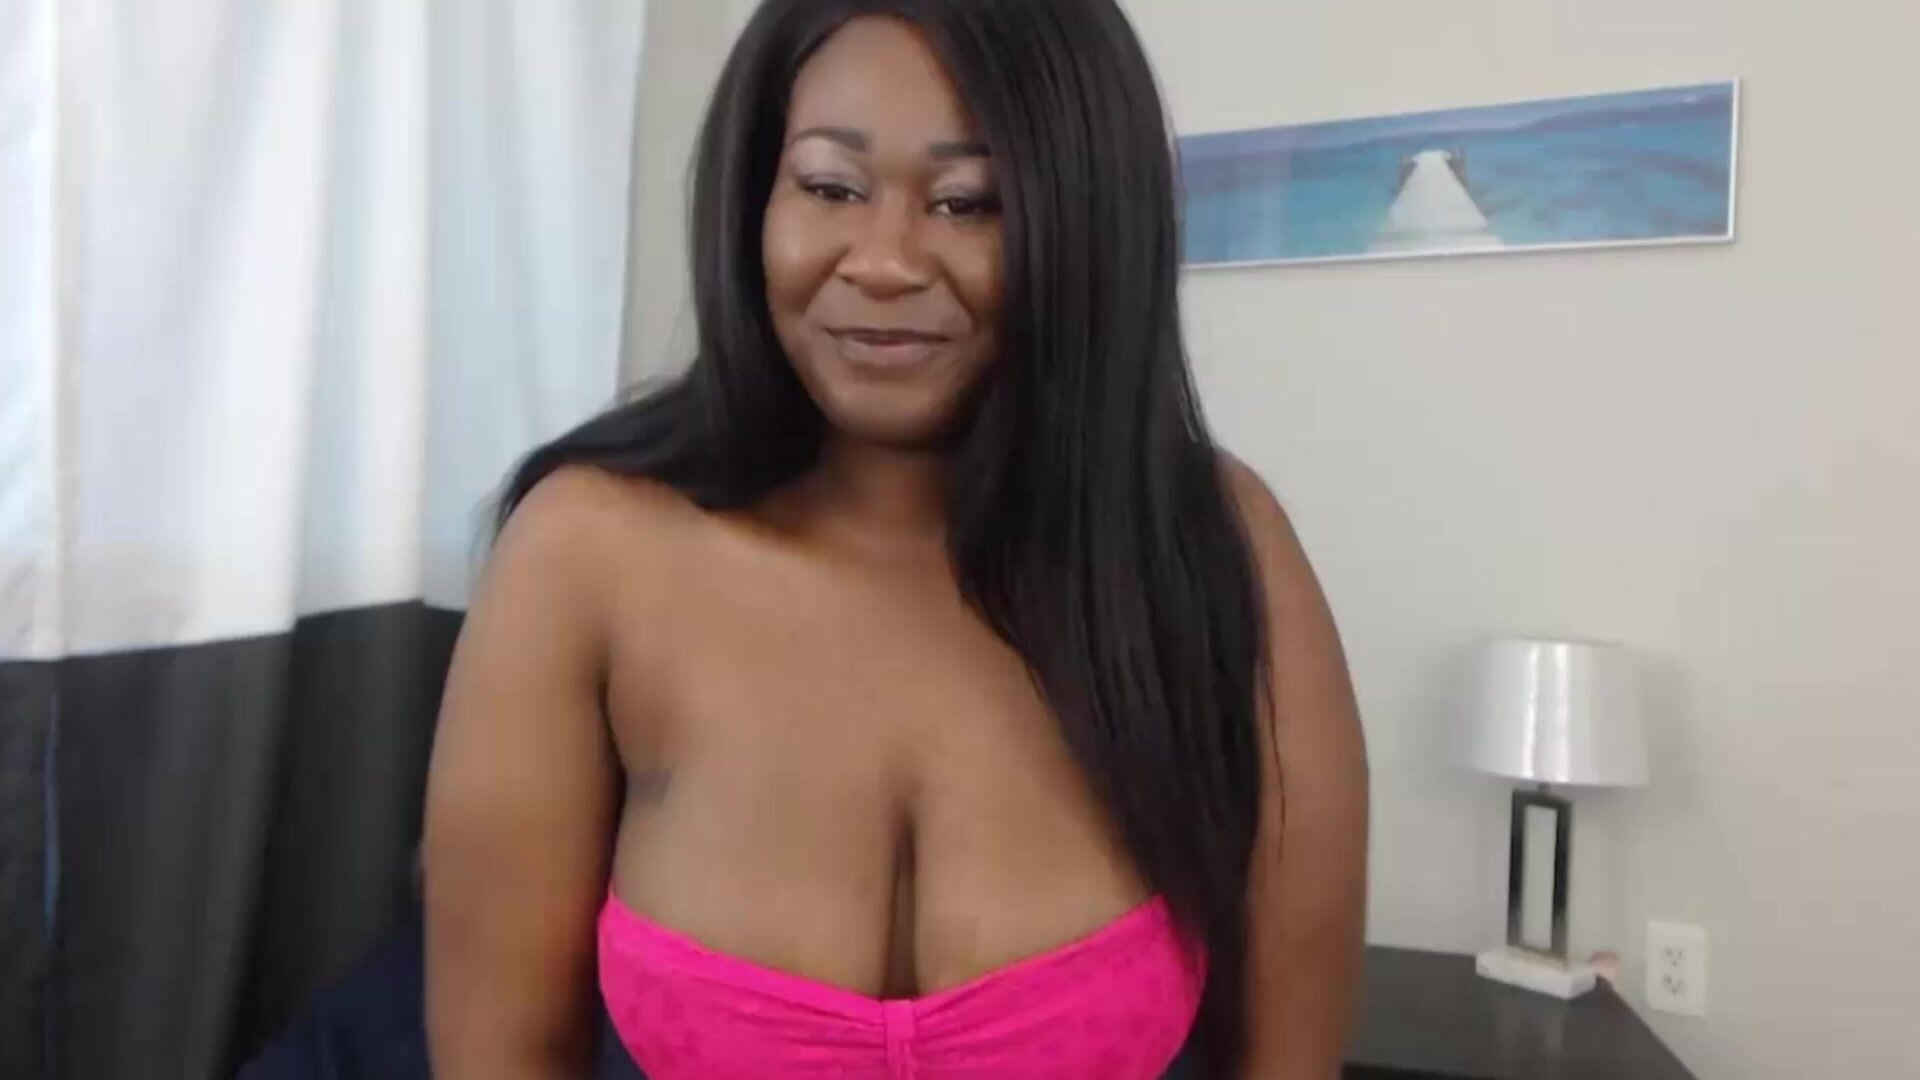 Adorable busty ebony babe with juicy butt and slim waist